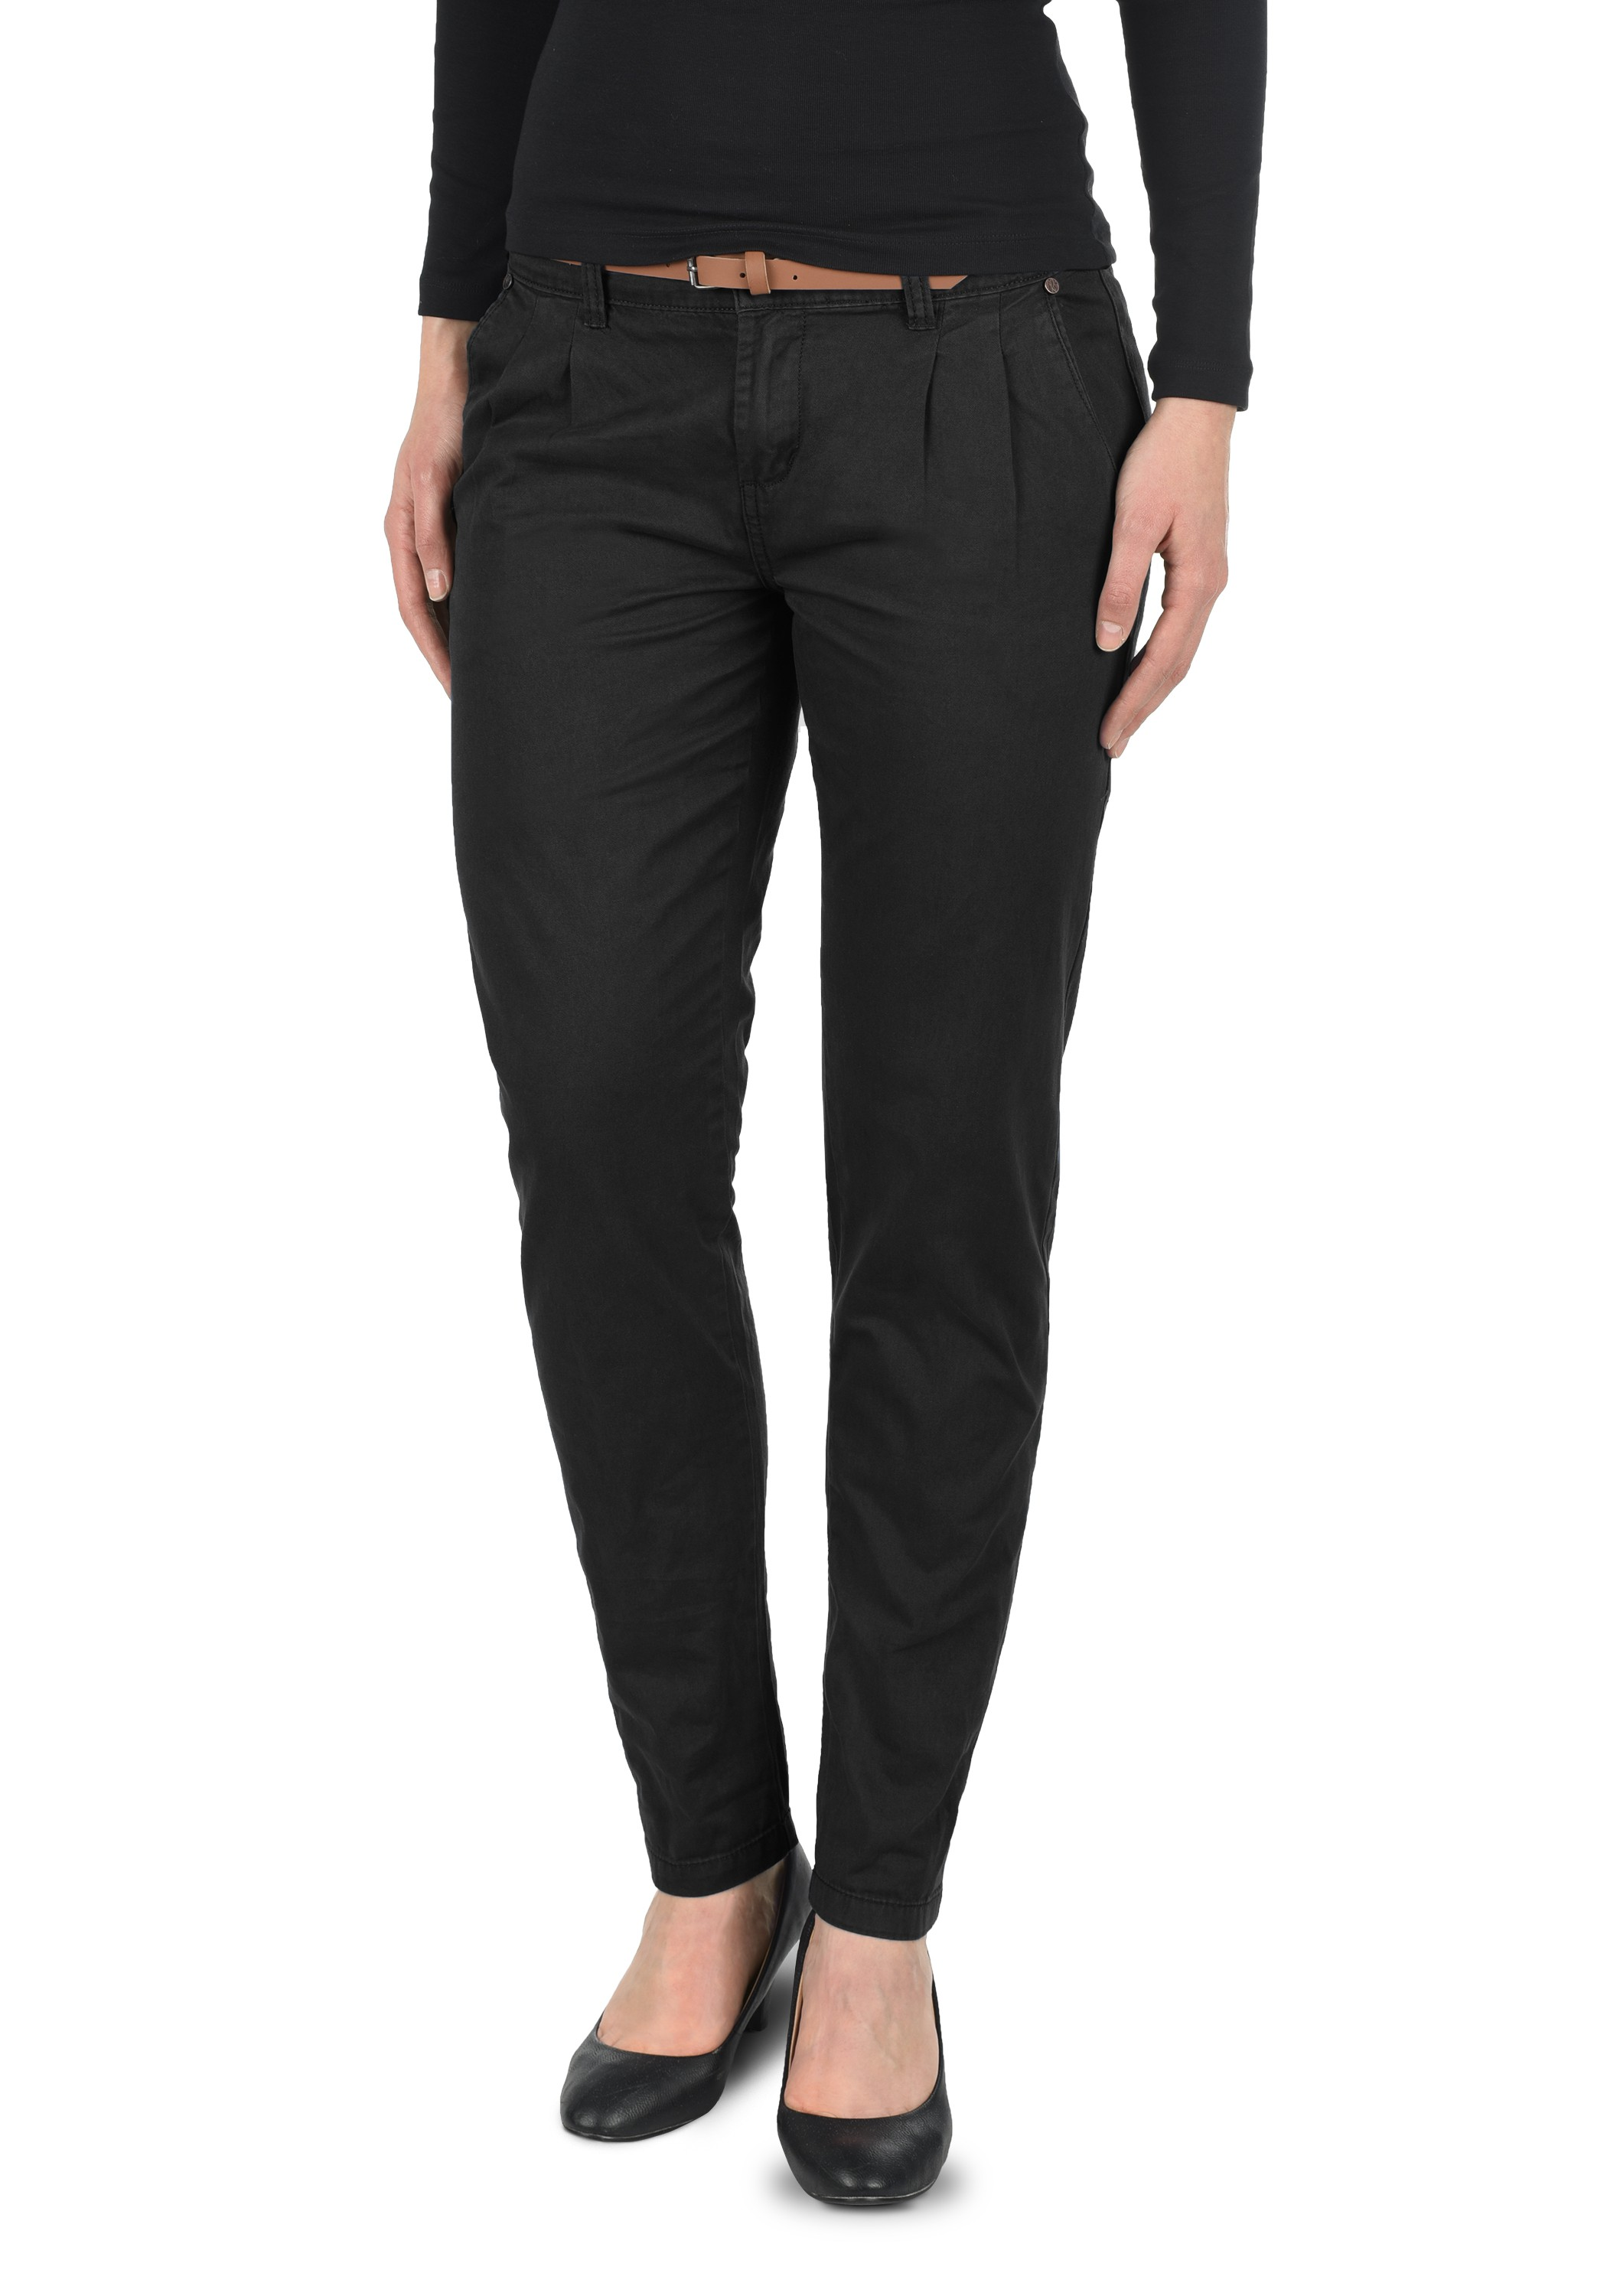 DESIRES Jacqueline Chino Pants